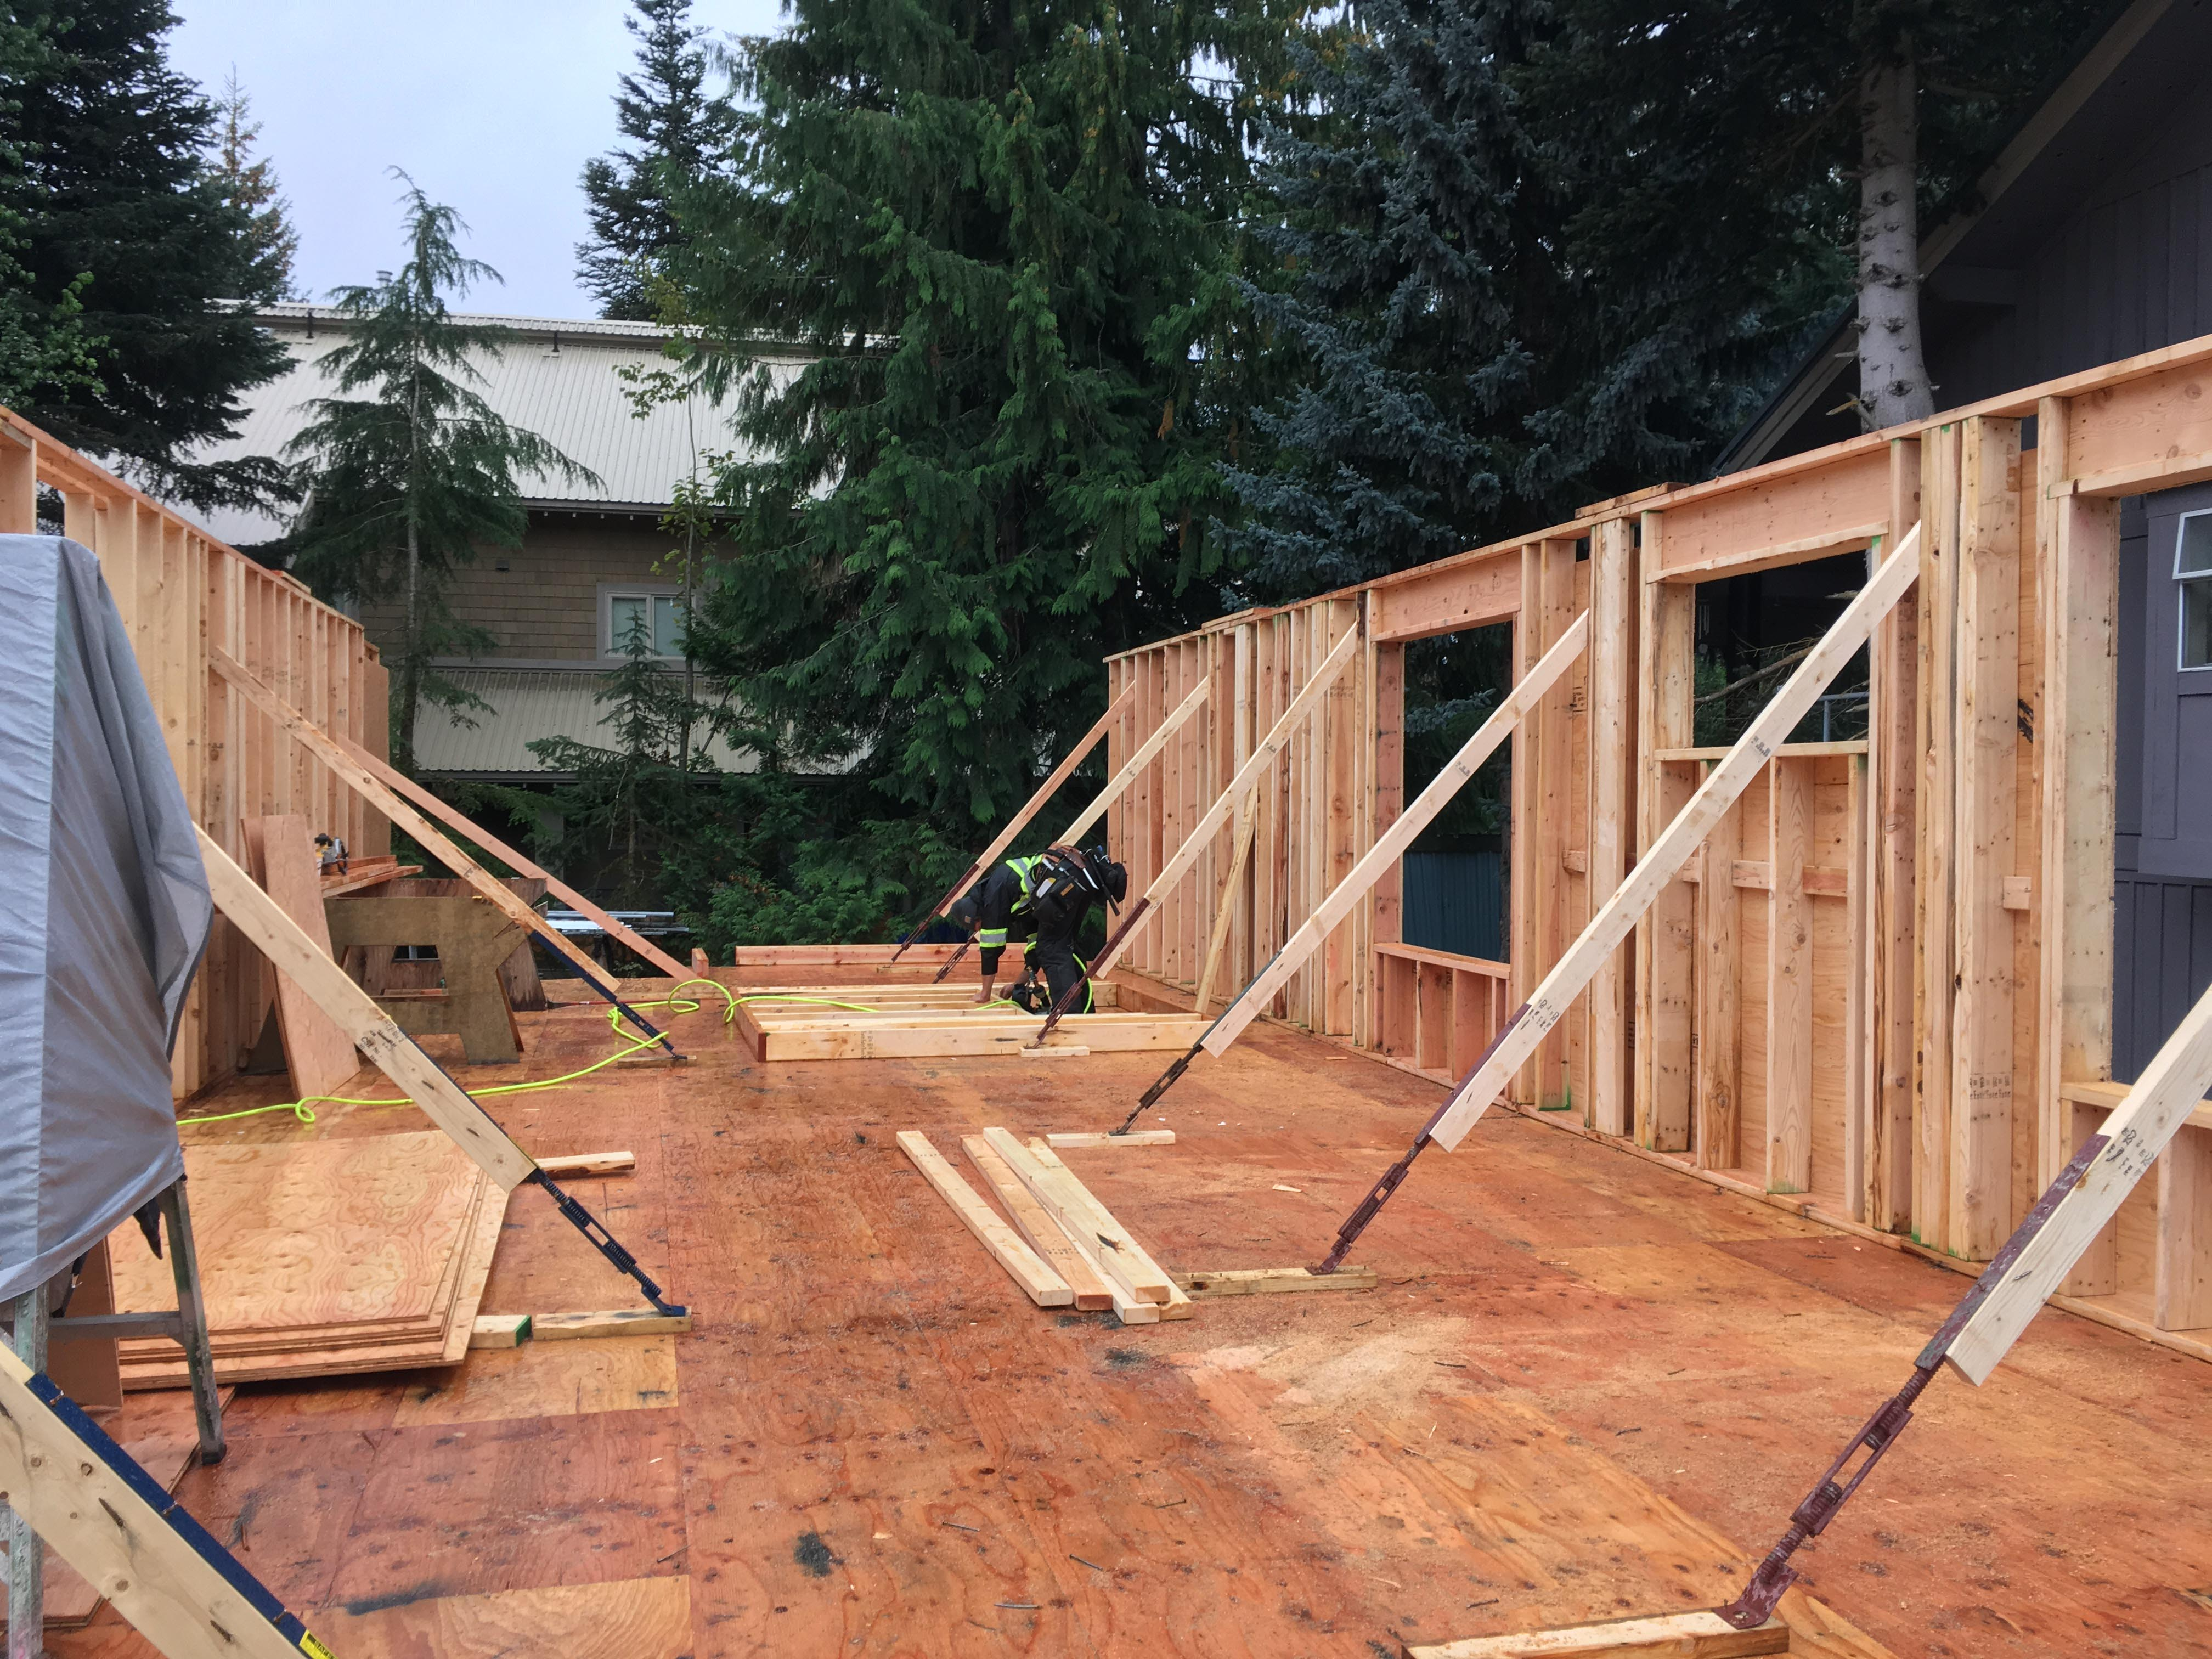 Pound 4 Pound, Framing and Forming, wall framing